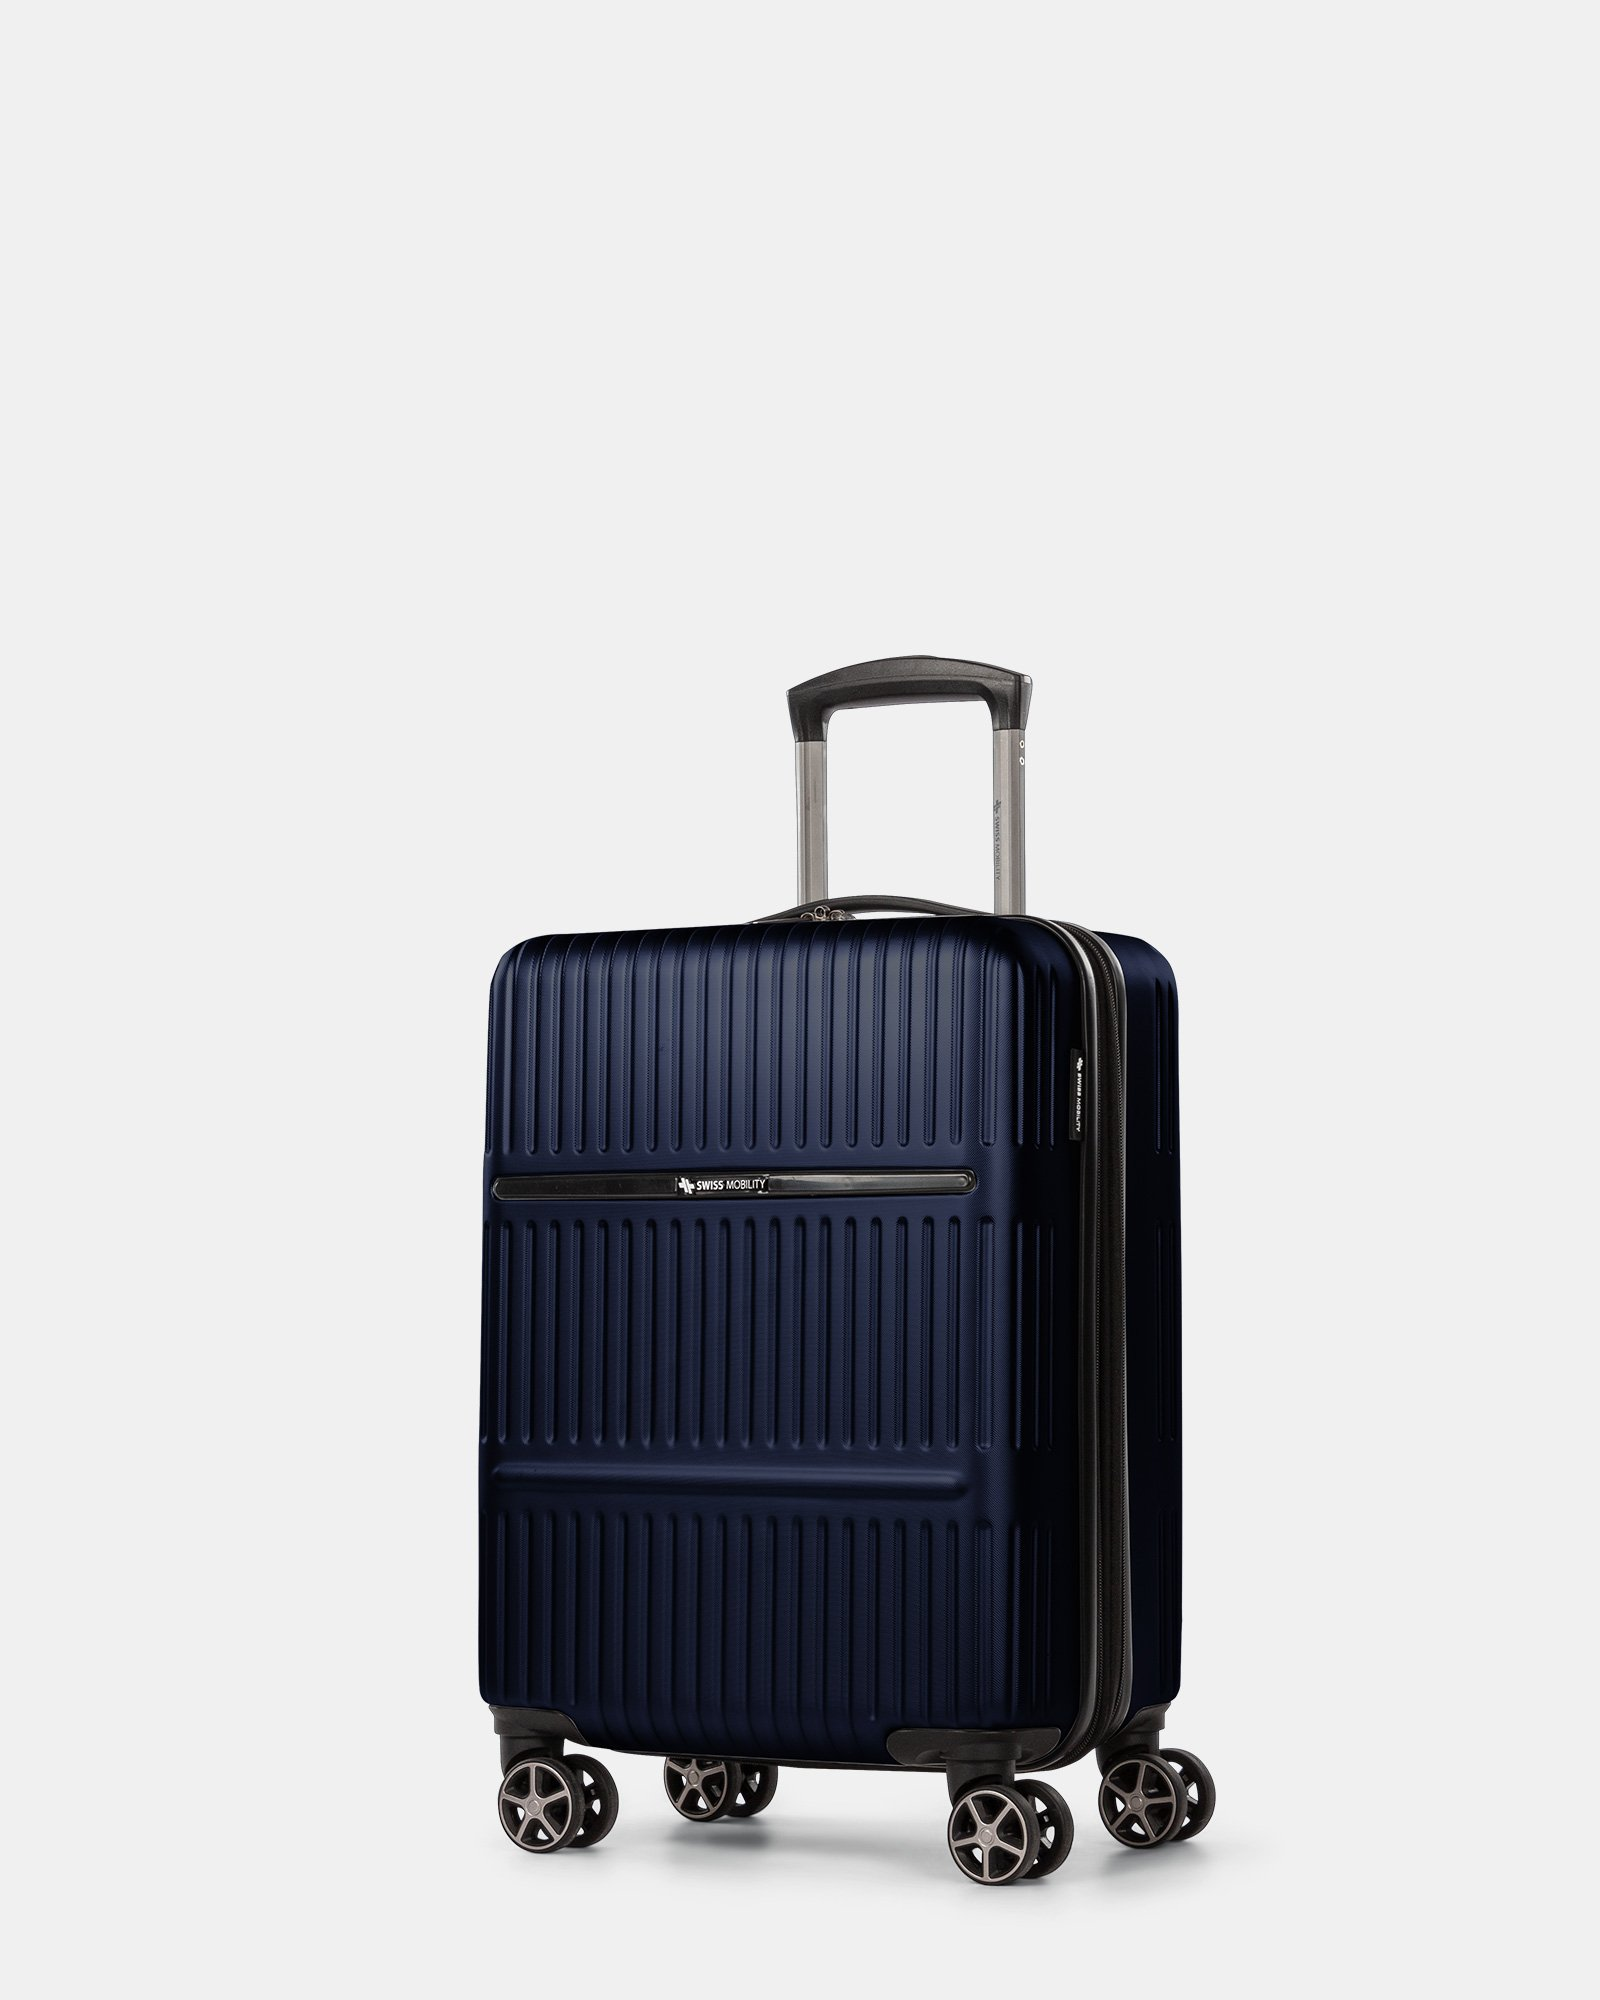 Highway - Hardside Carry-on - Swiss Mobility - Zoom